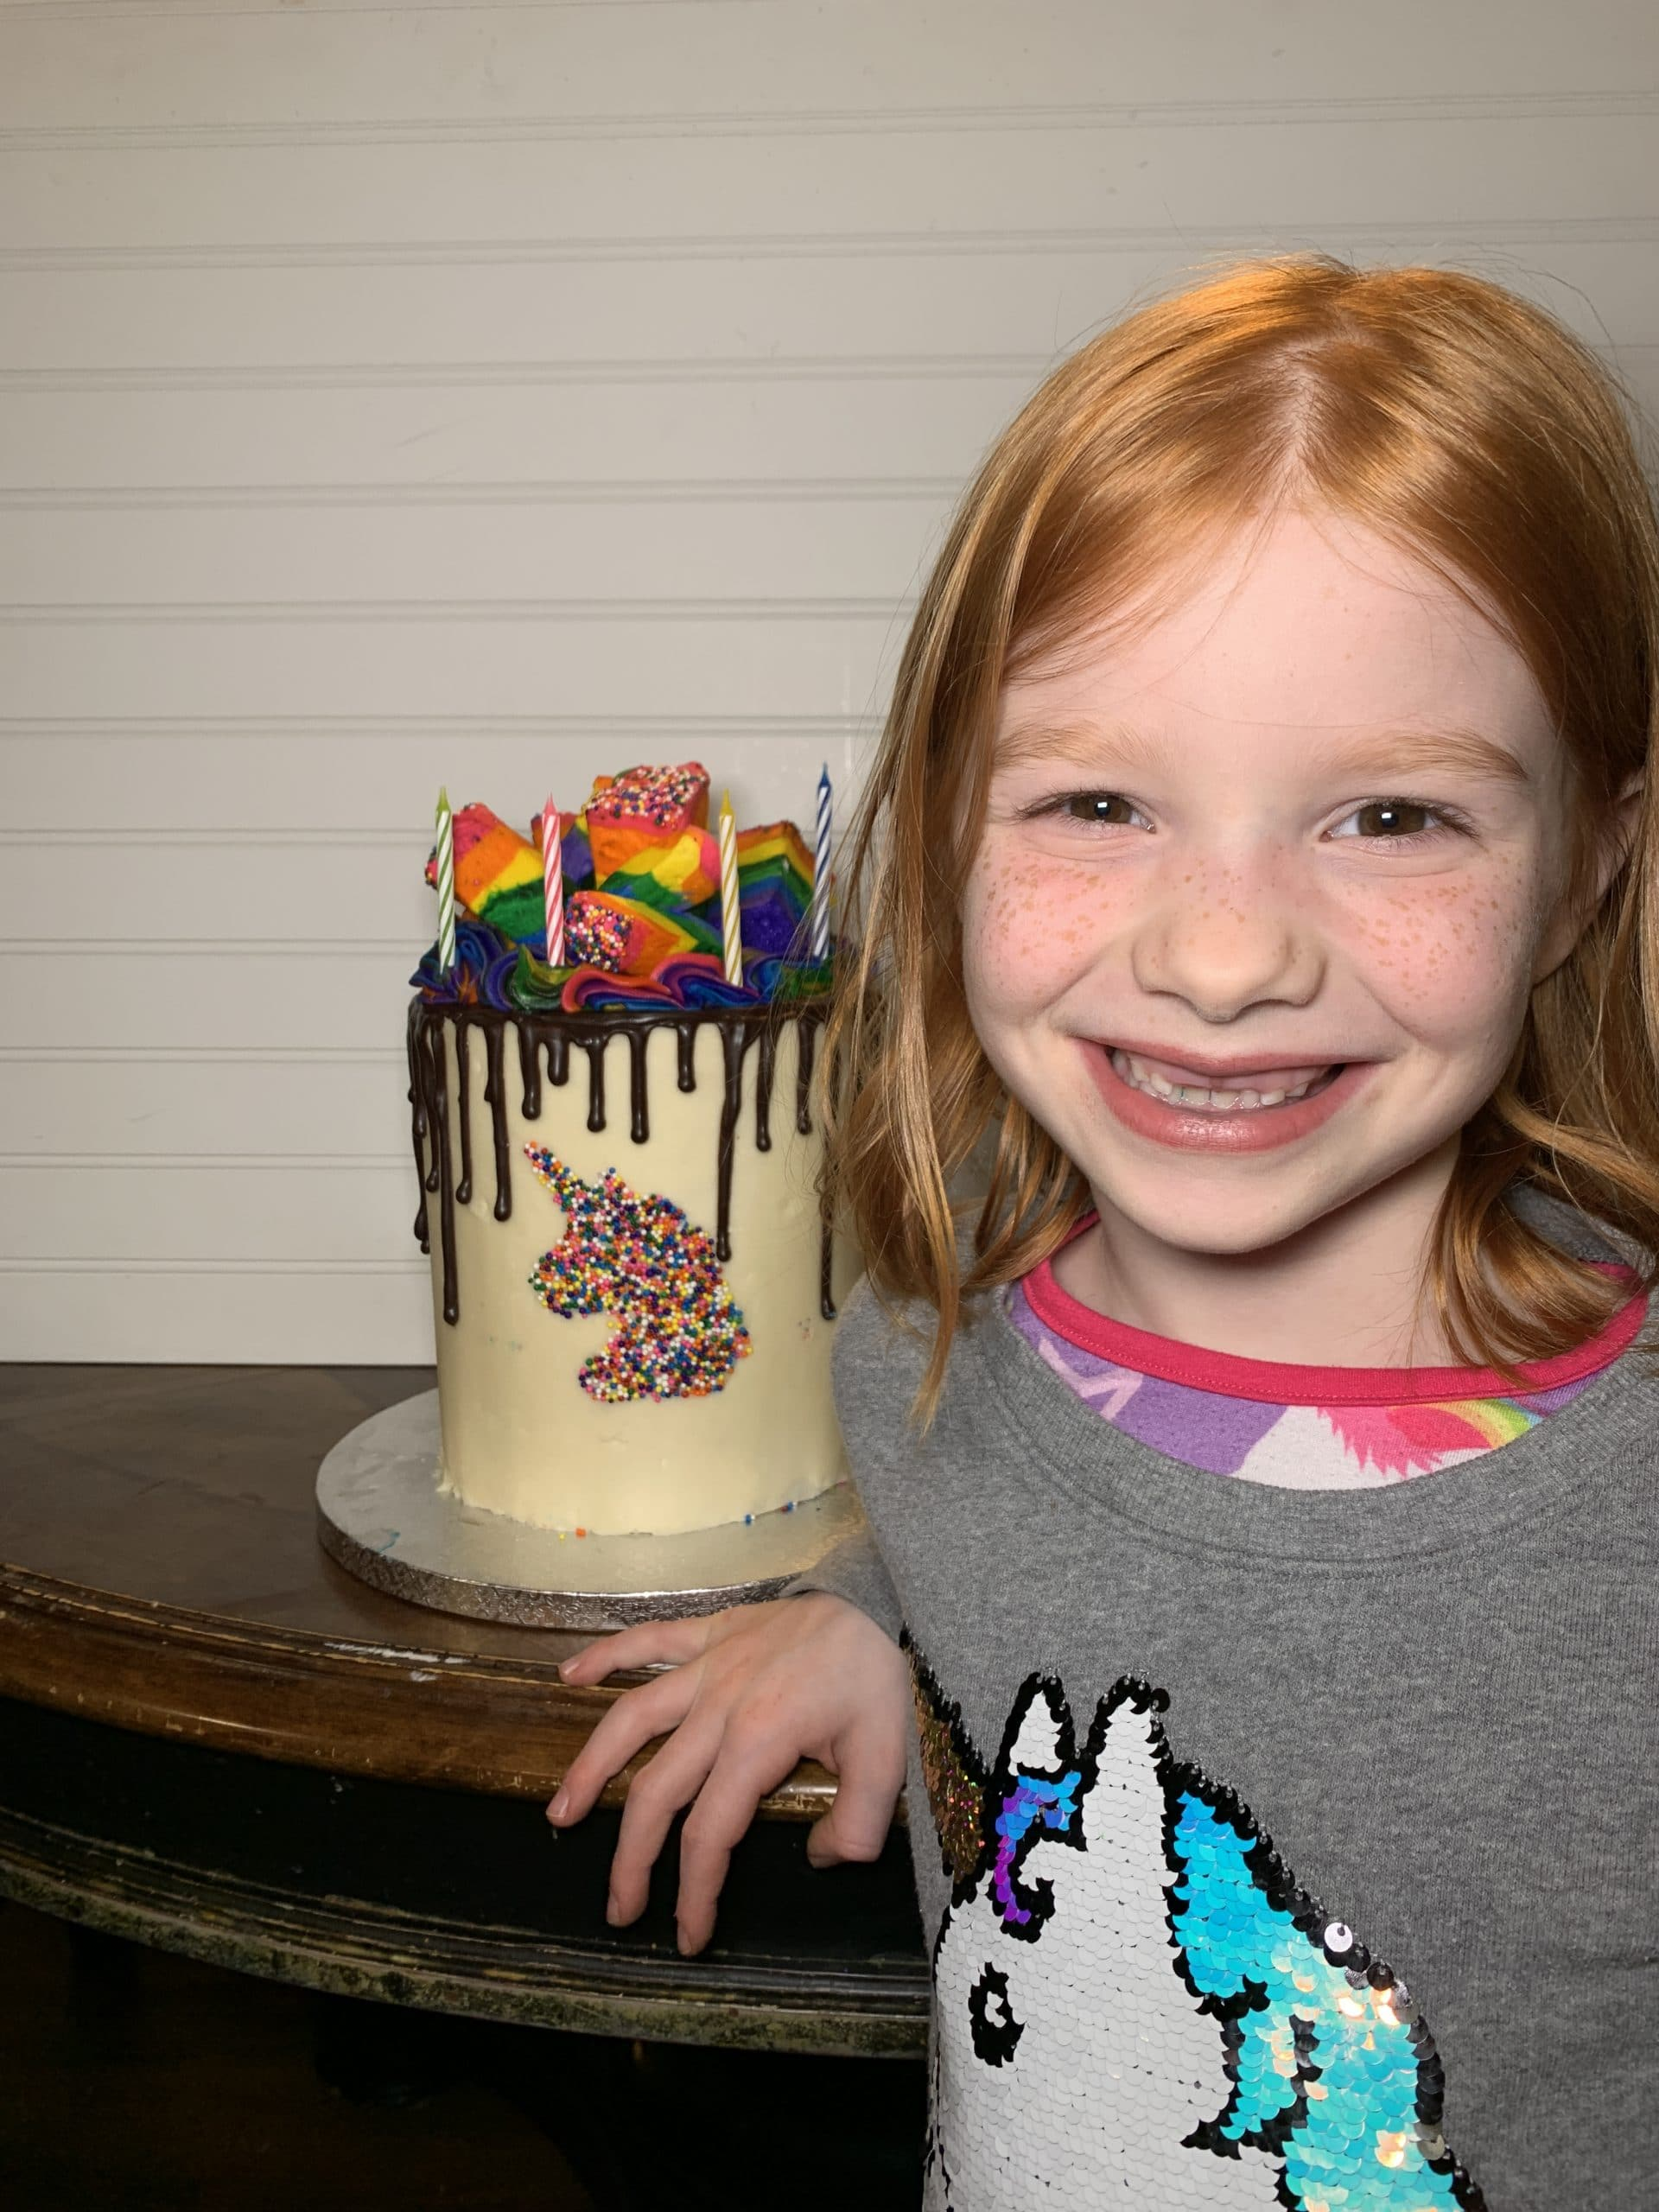 B with 7th birthday cake